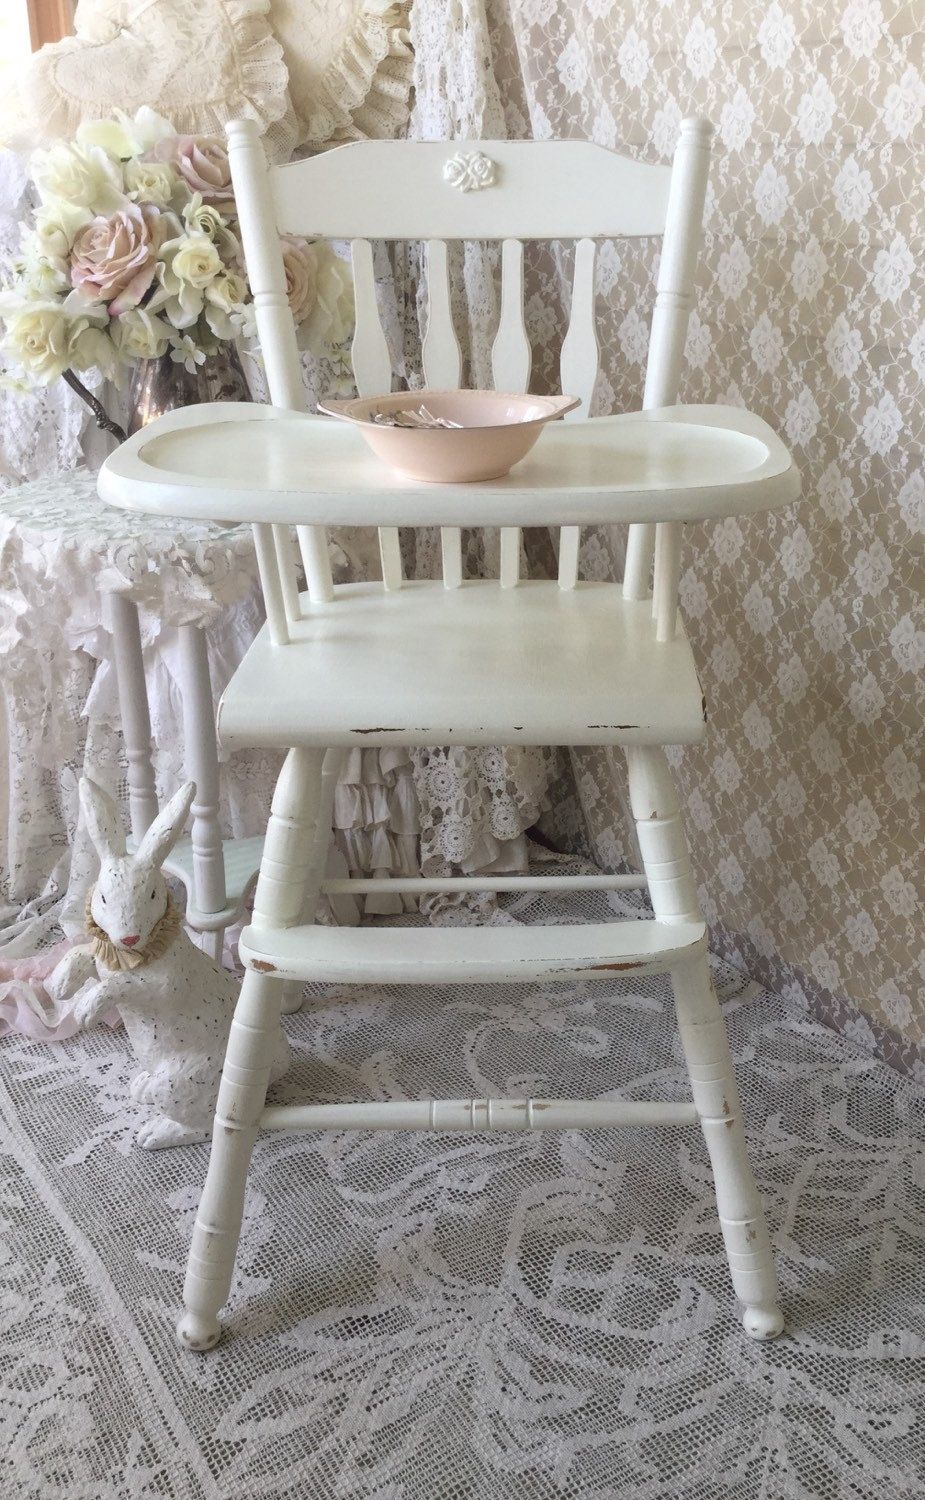 Groovy White Wood Baby High Chair Wooden High Chairs Vintage Gmtry Best Dining Table And Chair Ideas Images Gmtryco